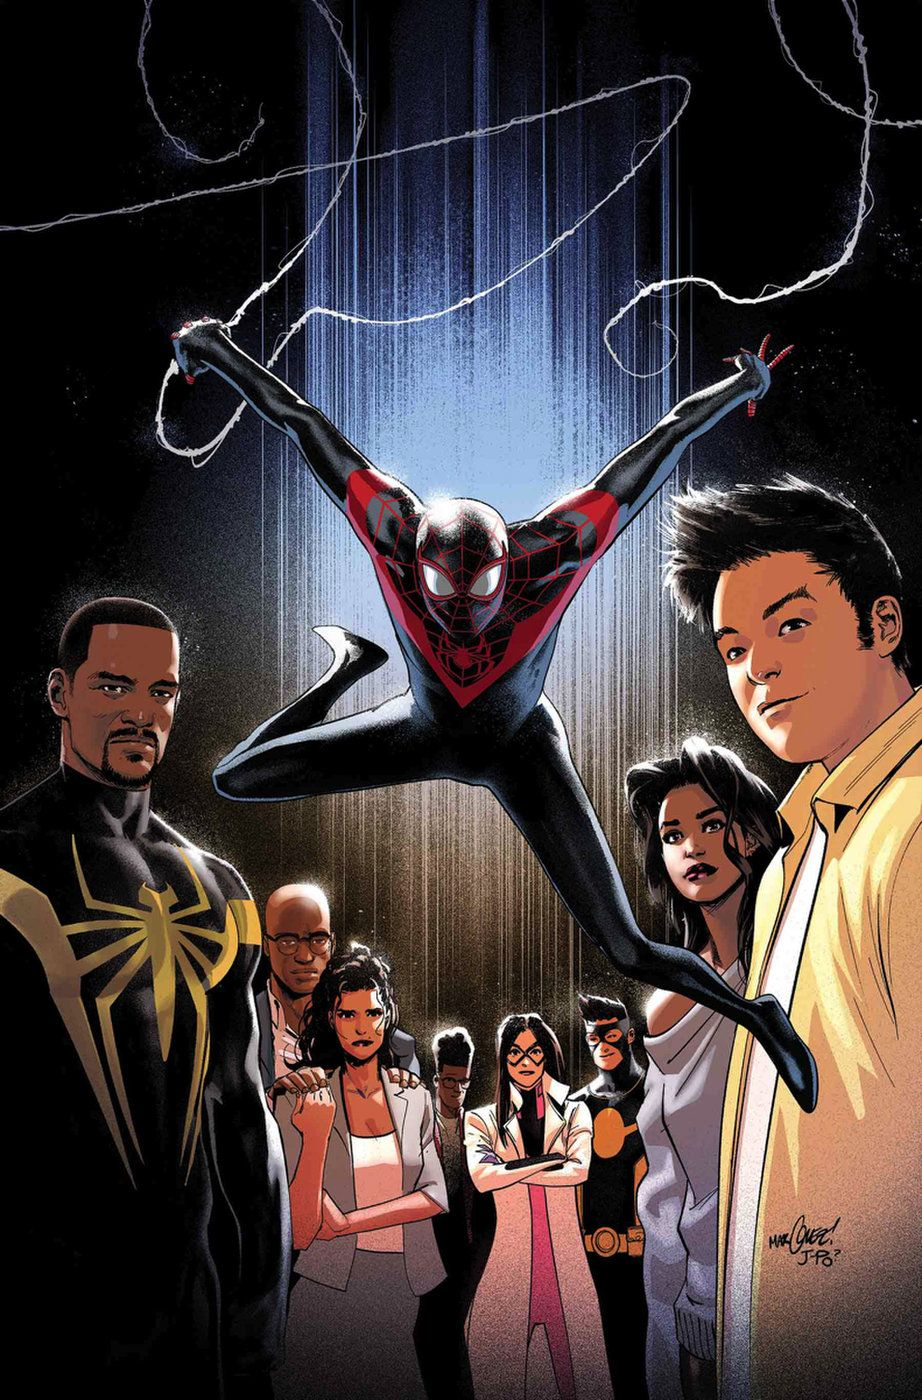 who should/do you want to see write for Miles Morales